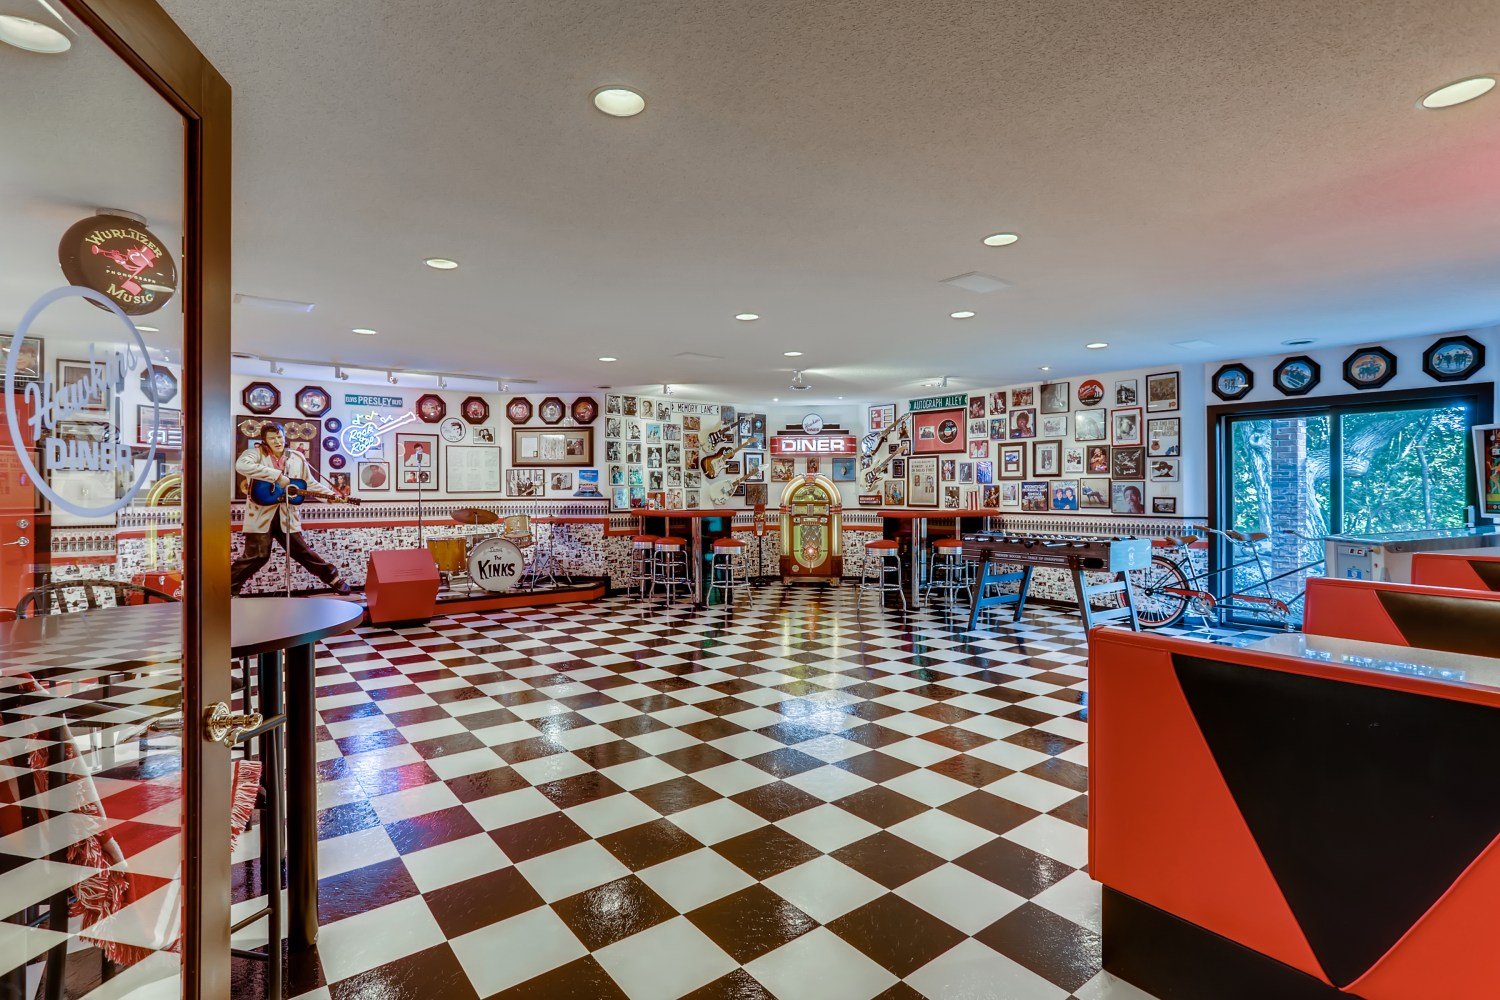 Diner with checkerboard floor